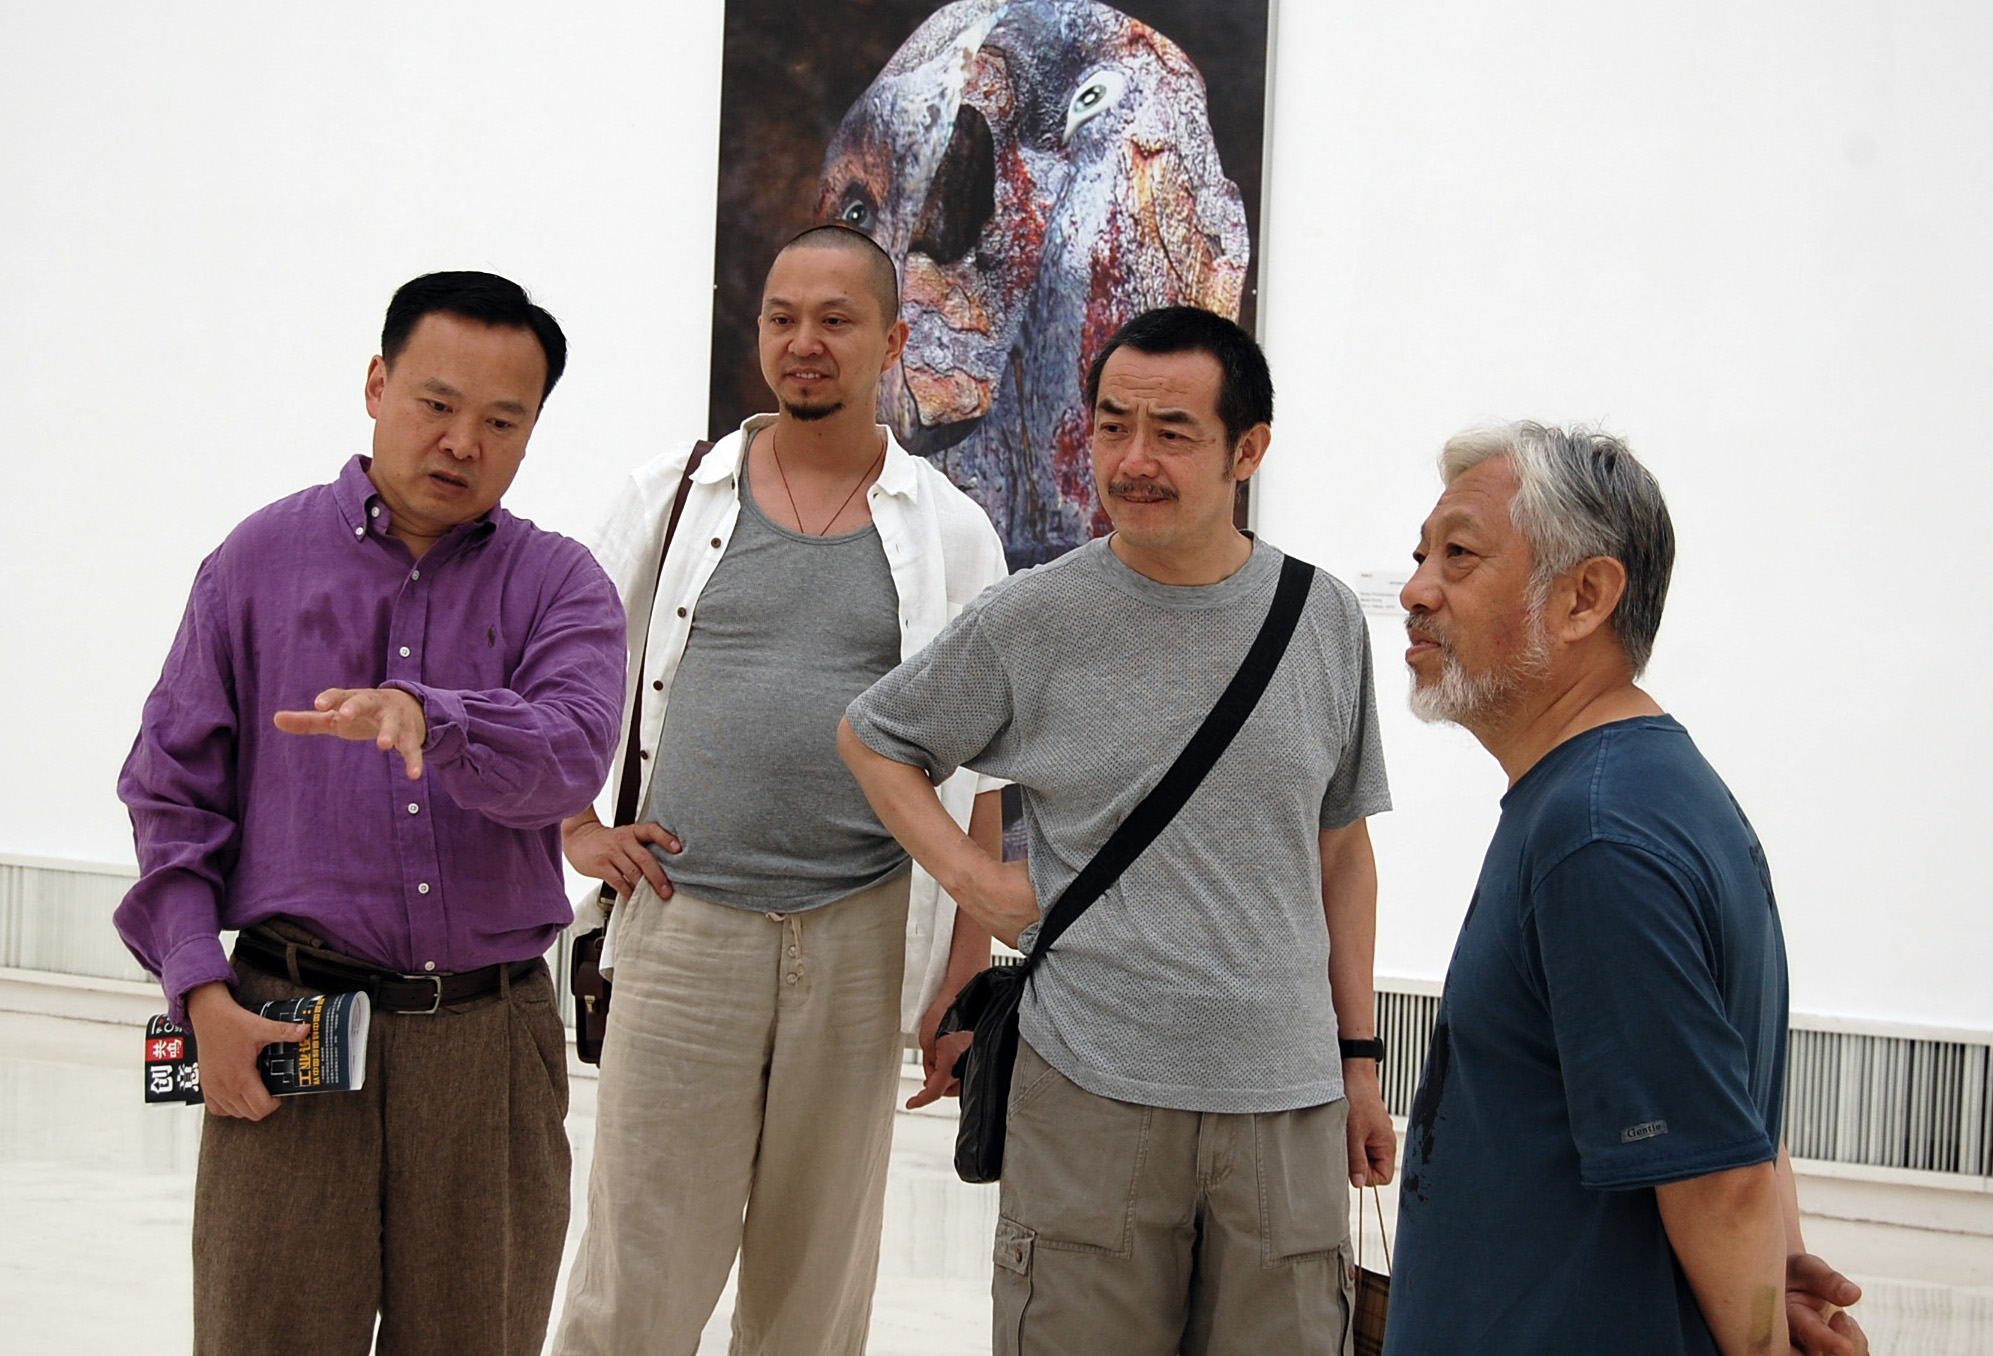 Solo Show at Song Zhuang Art Museum / 北京宋莊美術館個展 (2010)